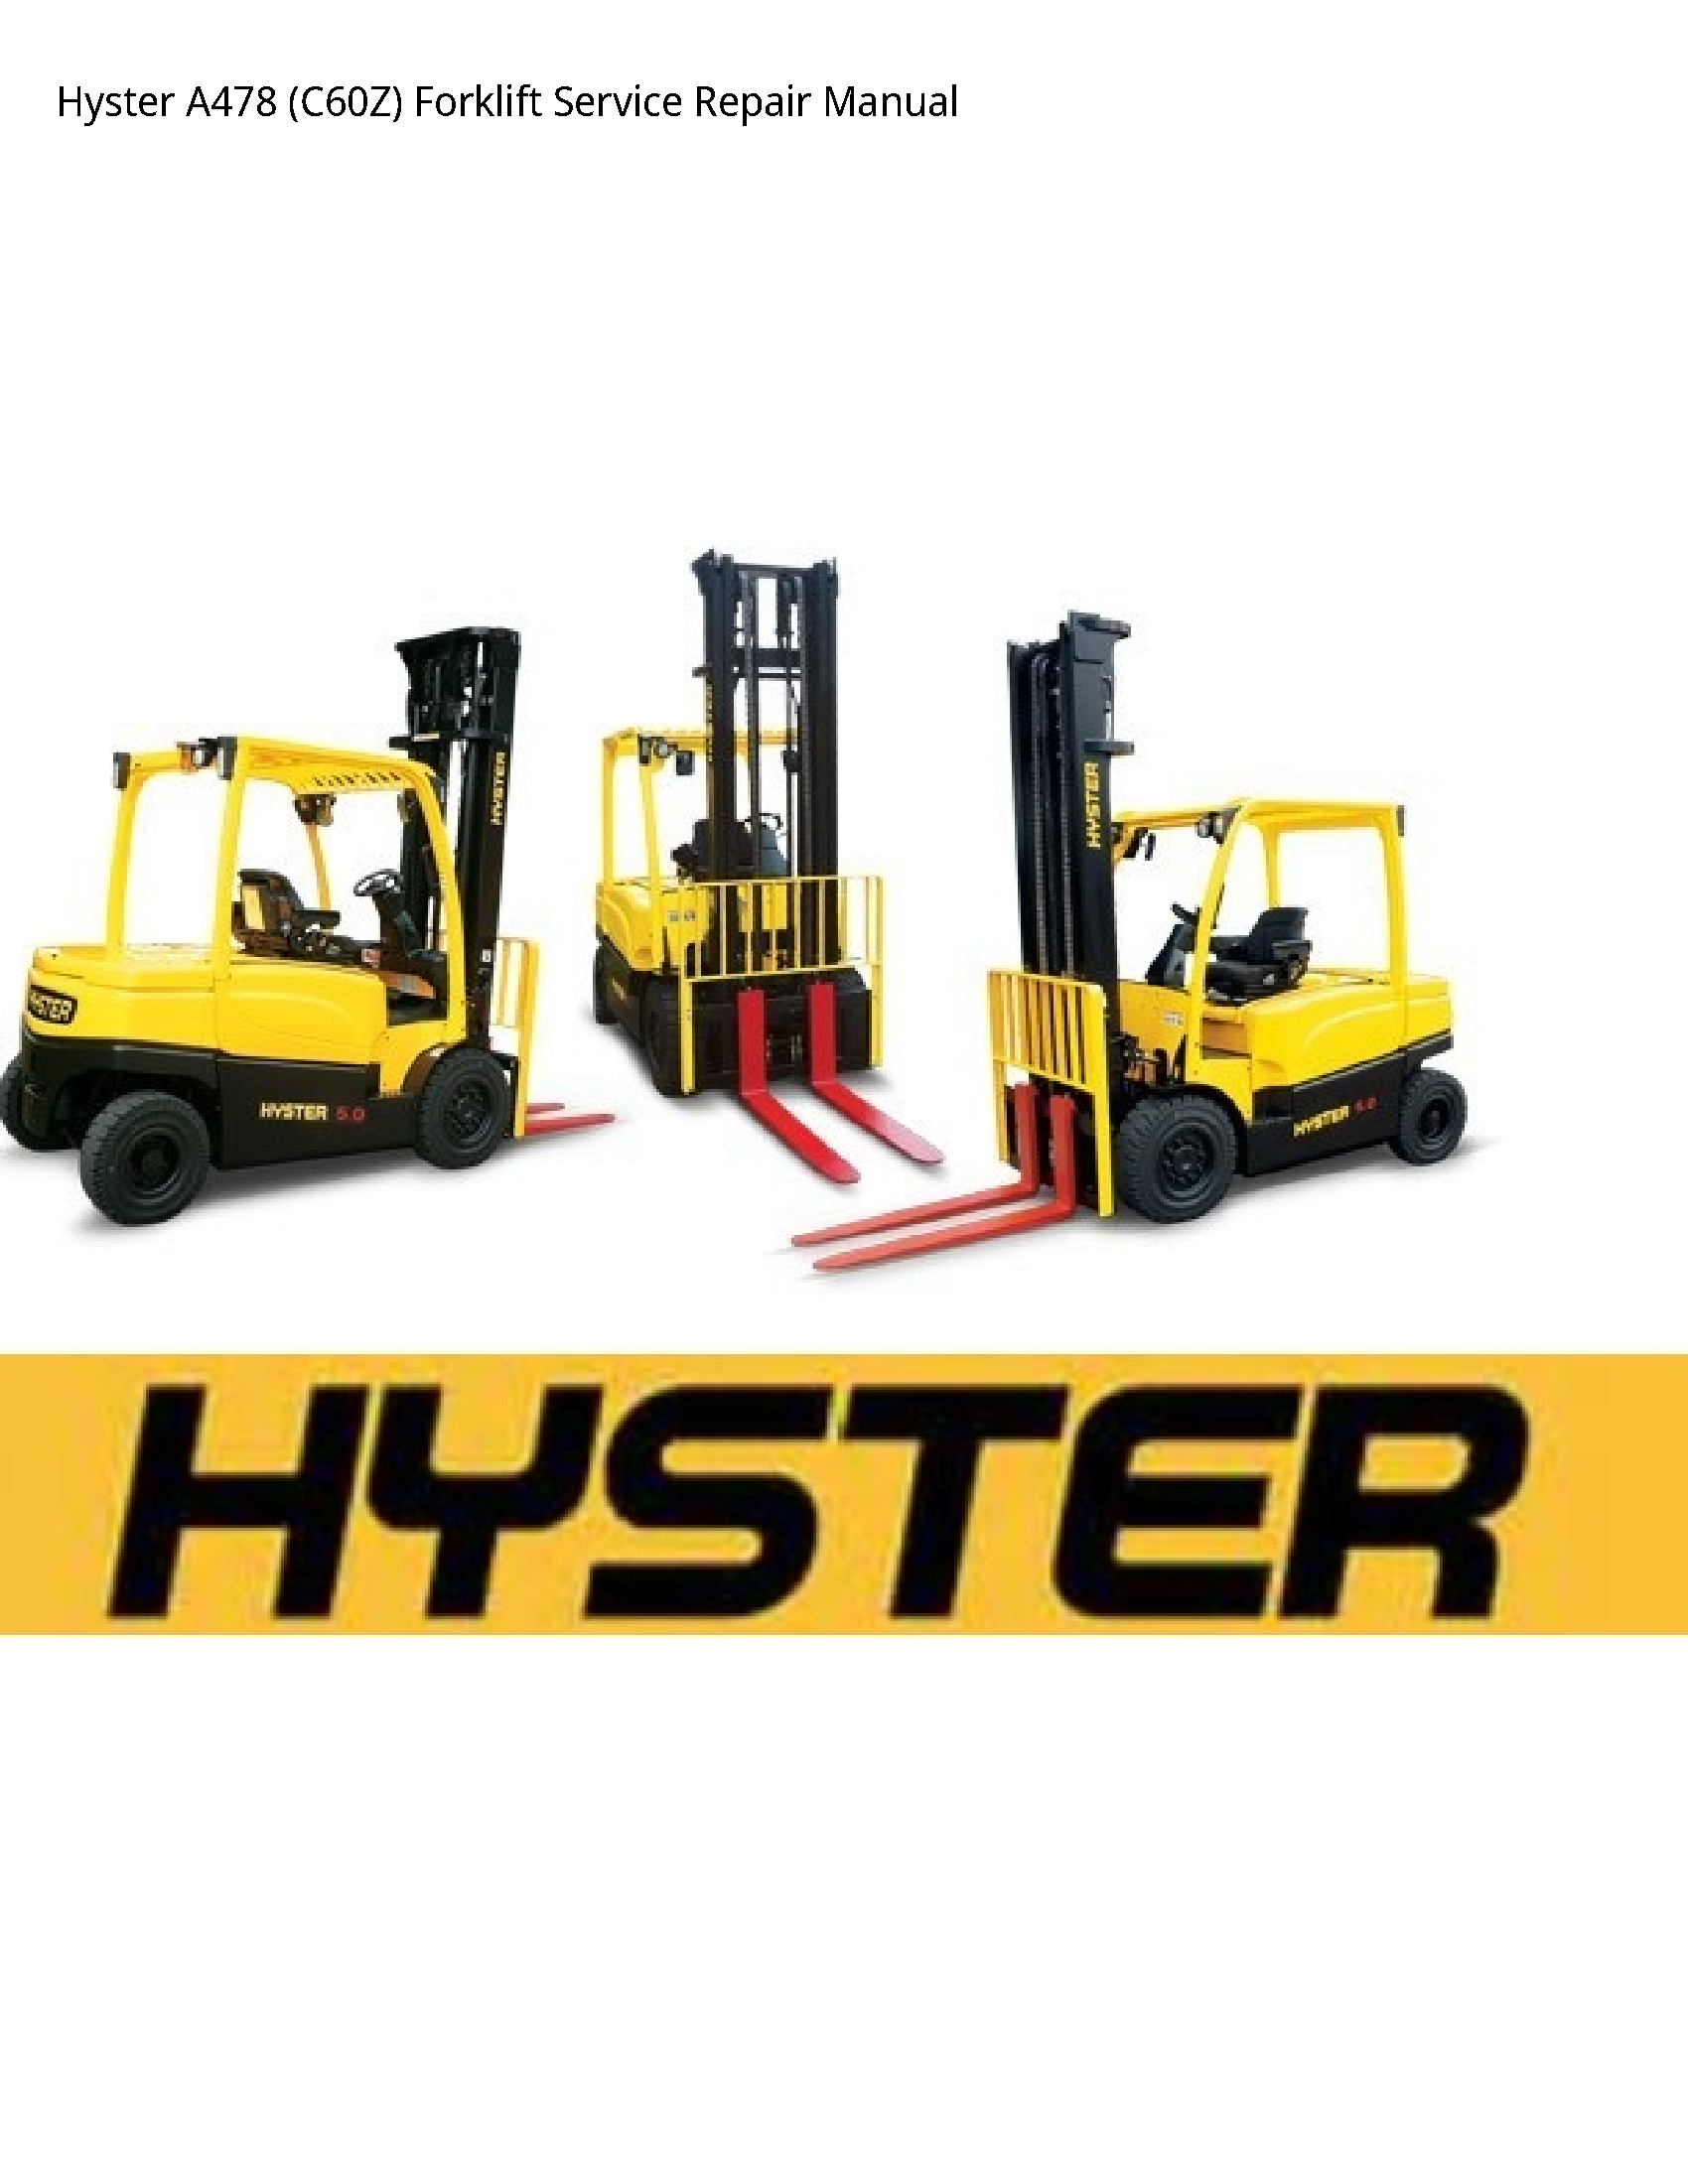 Hyster A478 Forklift manual